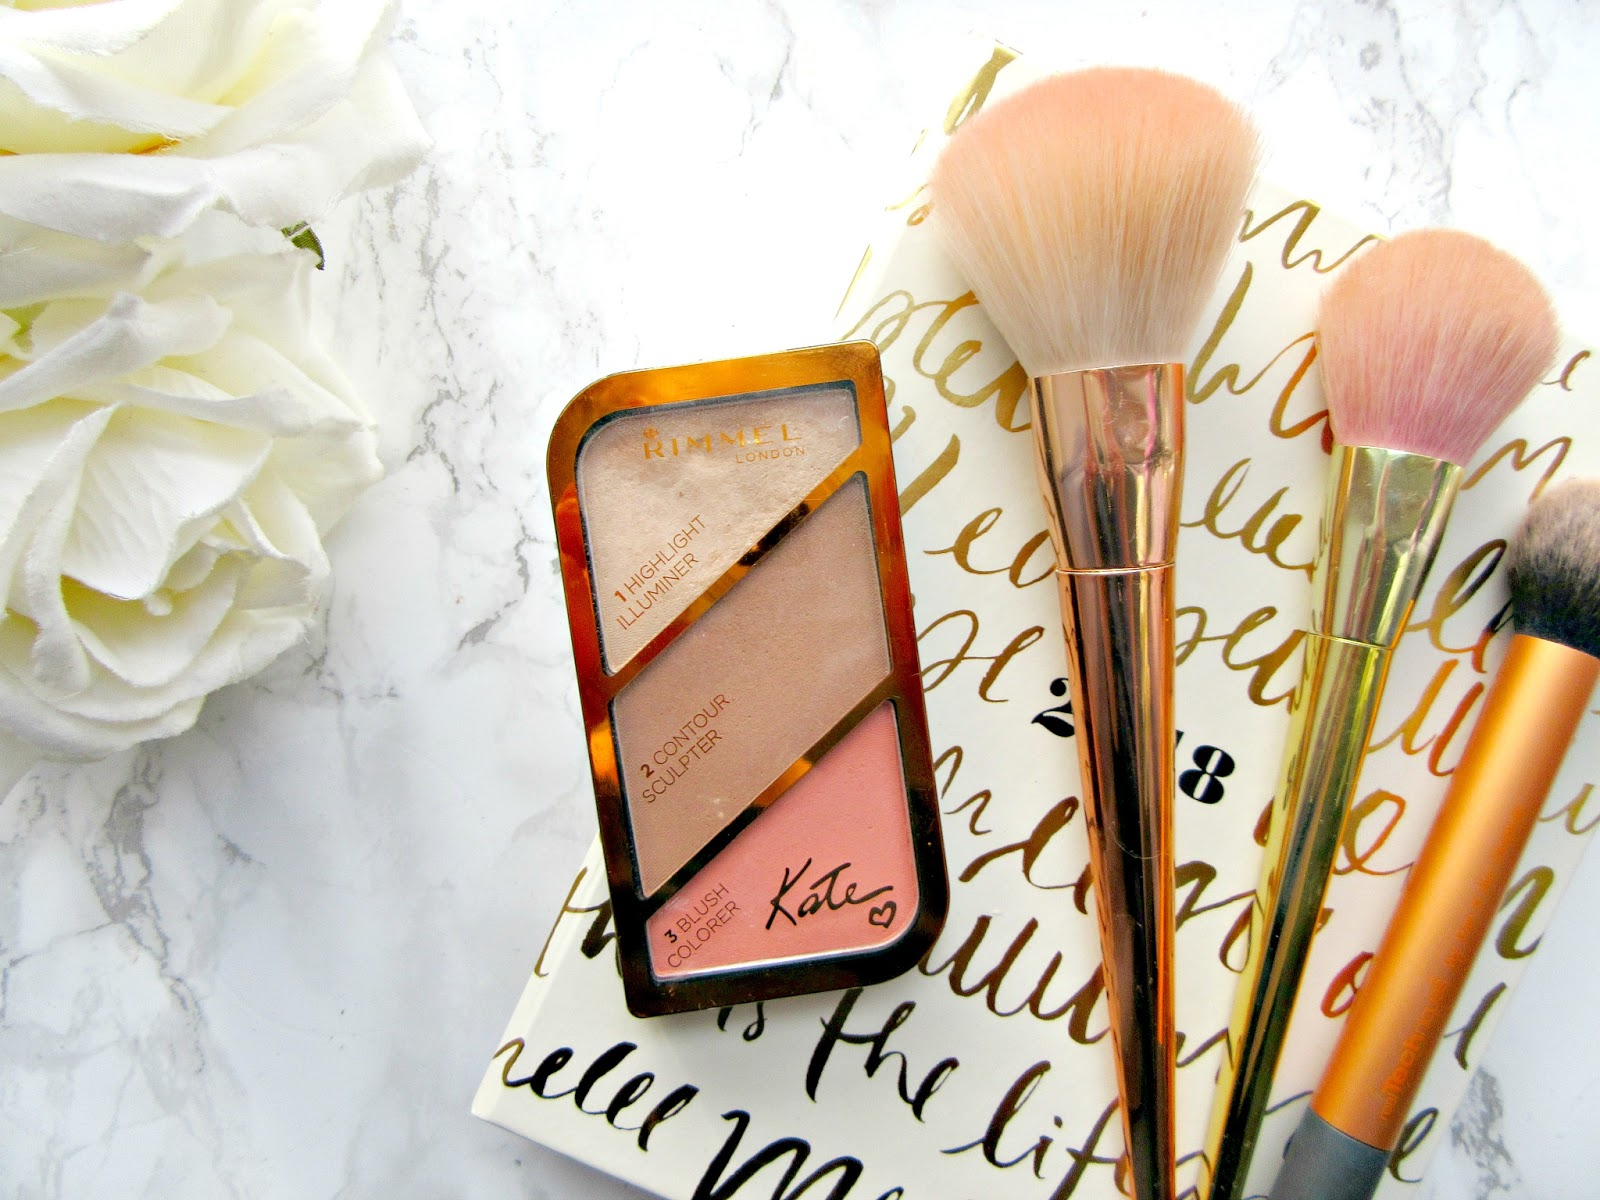 Rimmel Kate Moss Sculpting Palette